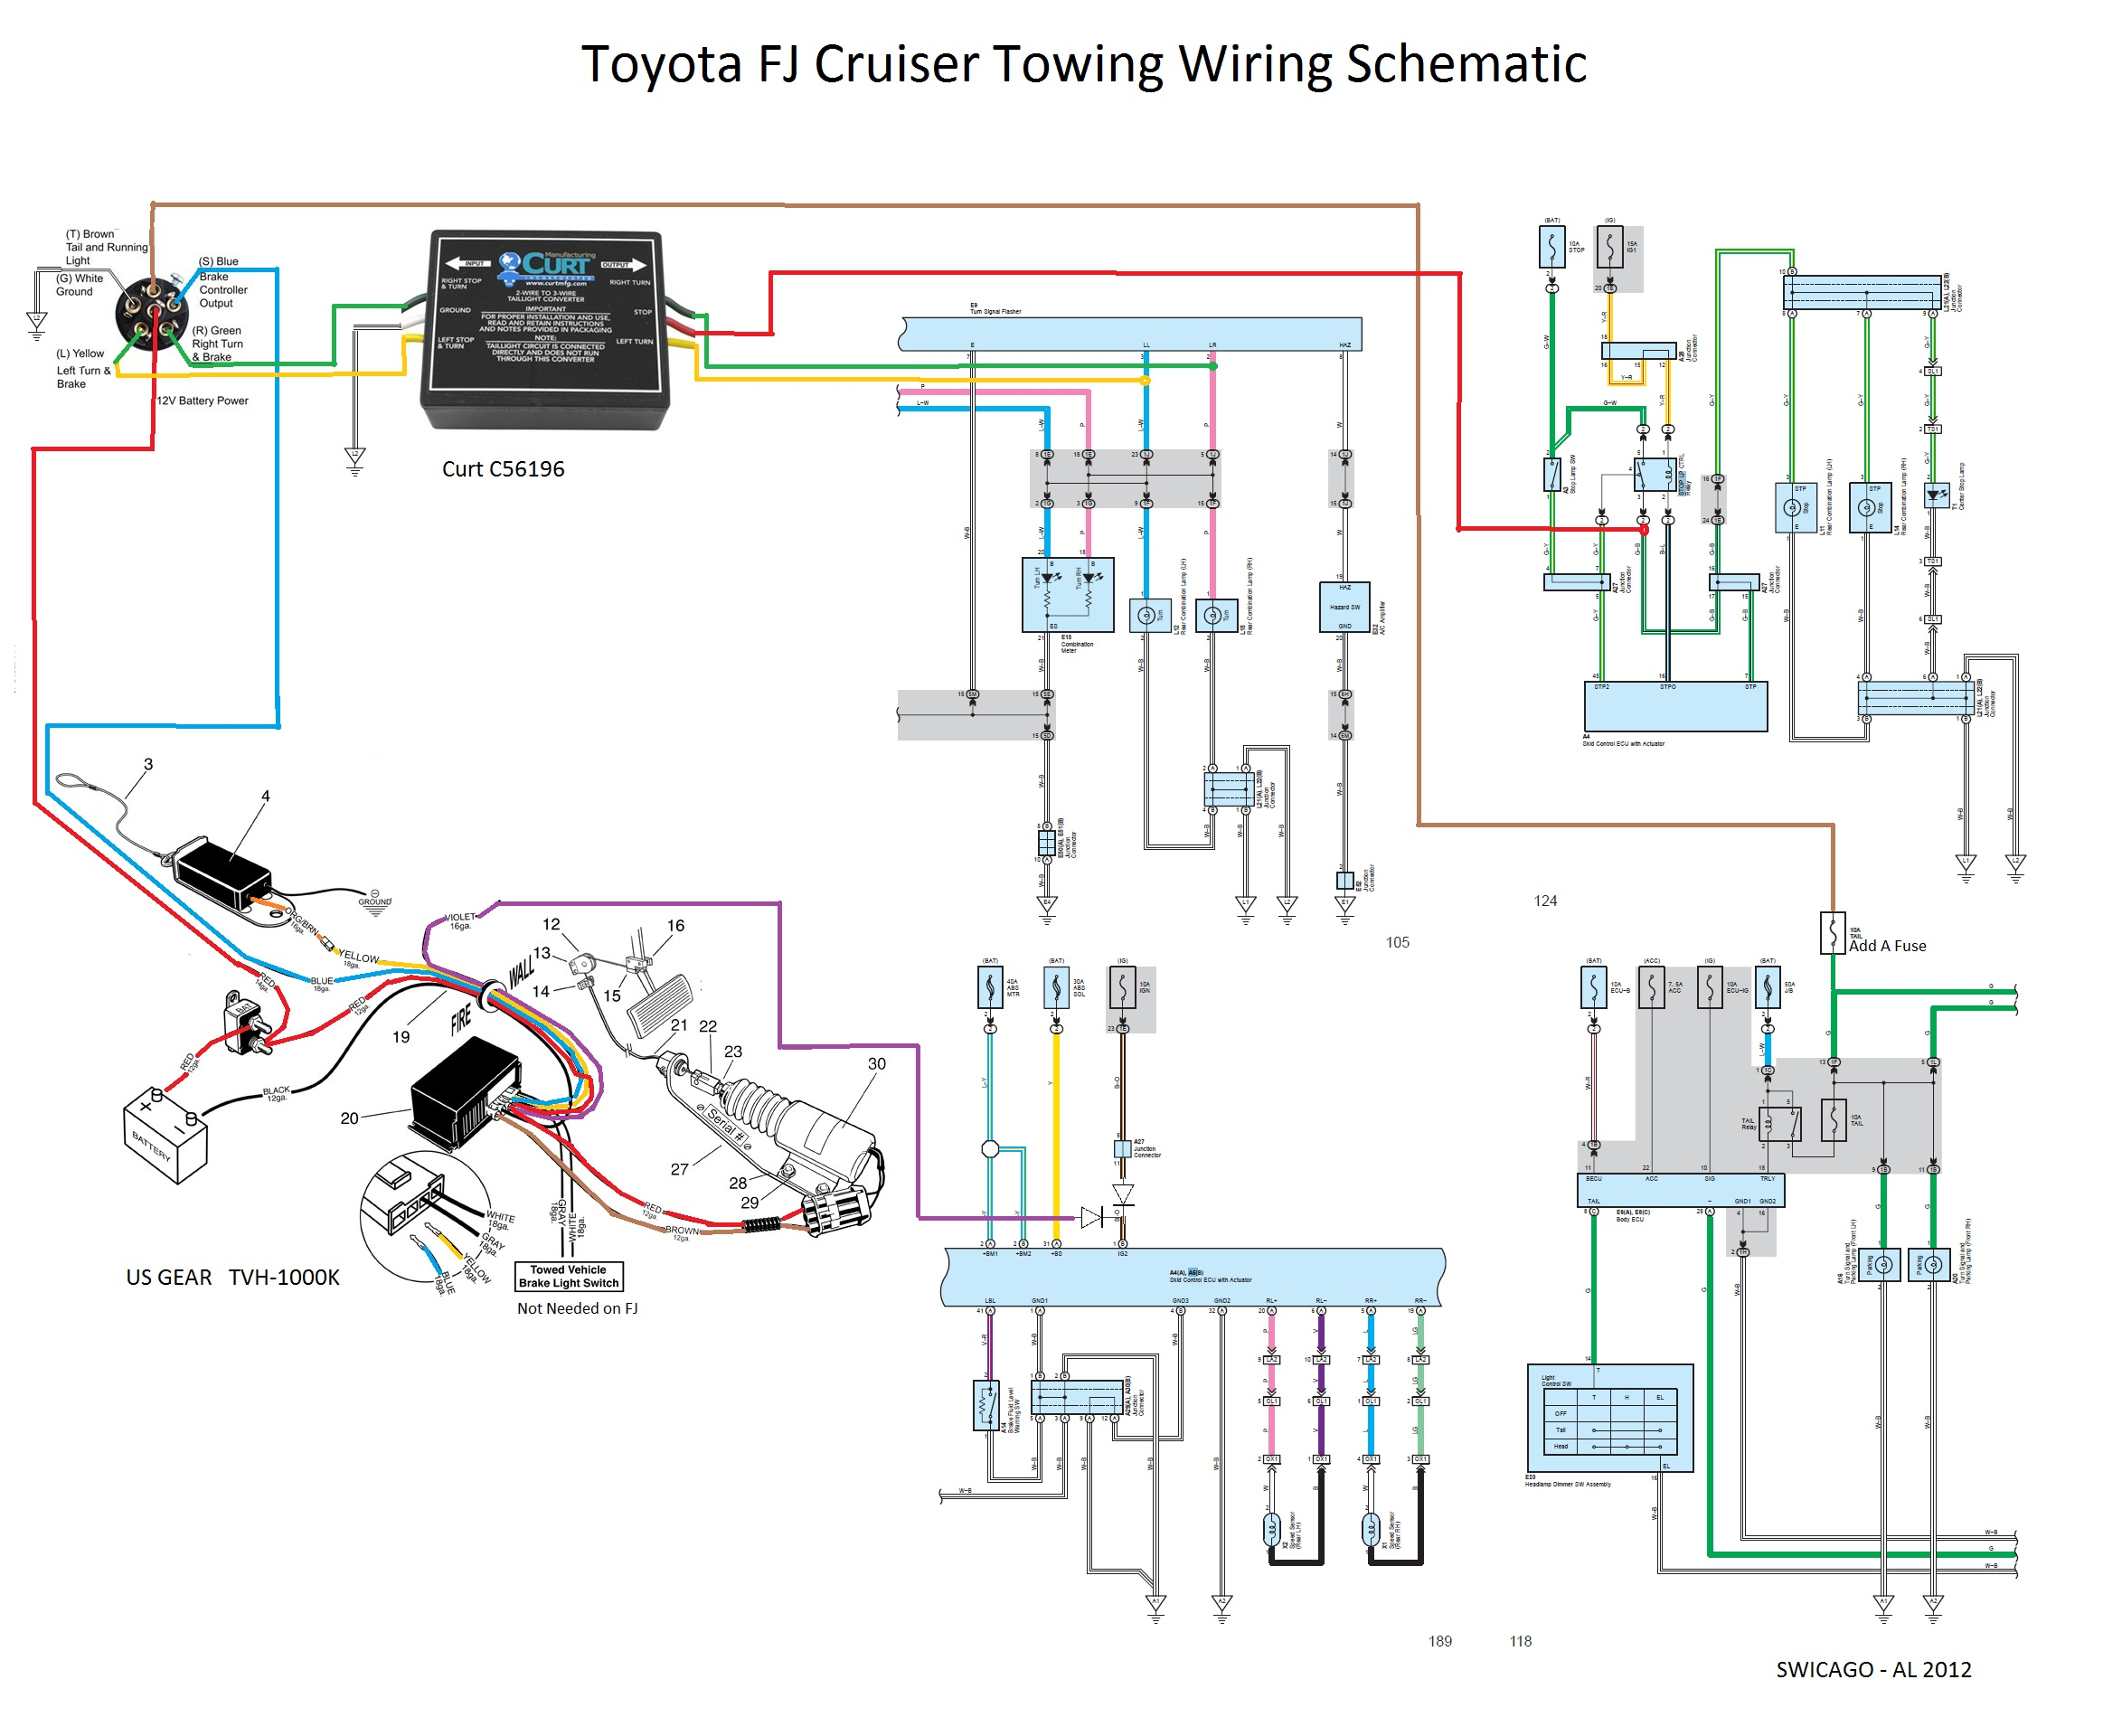 2010 Toyota Tundra Wiring Harness Wiring Diagrams Grow River A Grow River A Mumblestudio It